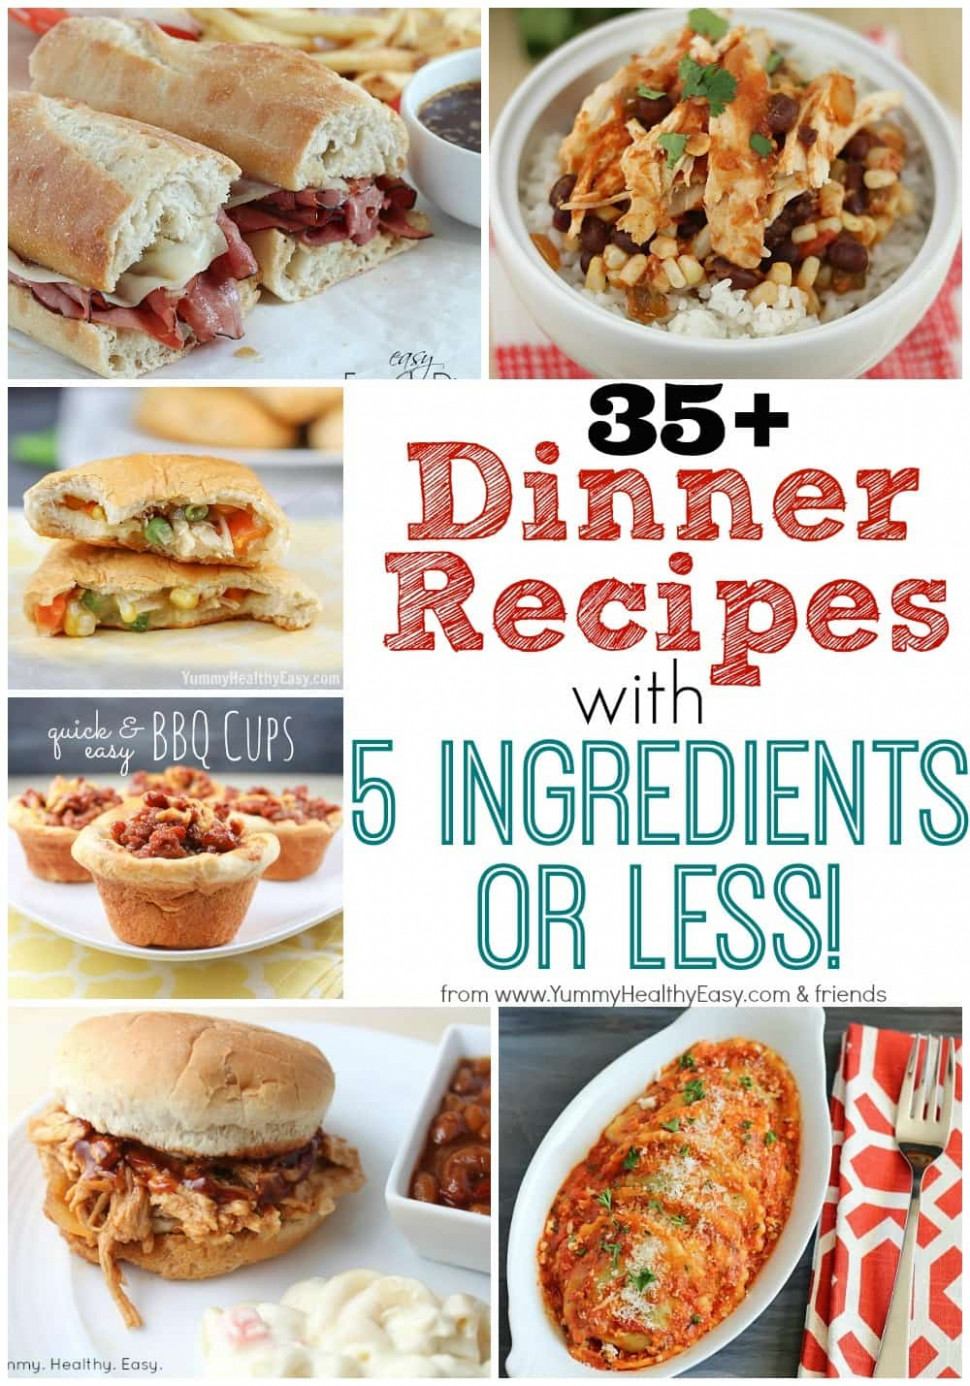 35+ Dinner Recipes with 5 Ingredients or Less! - Yummy ..